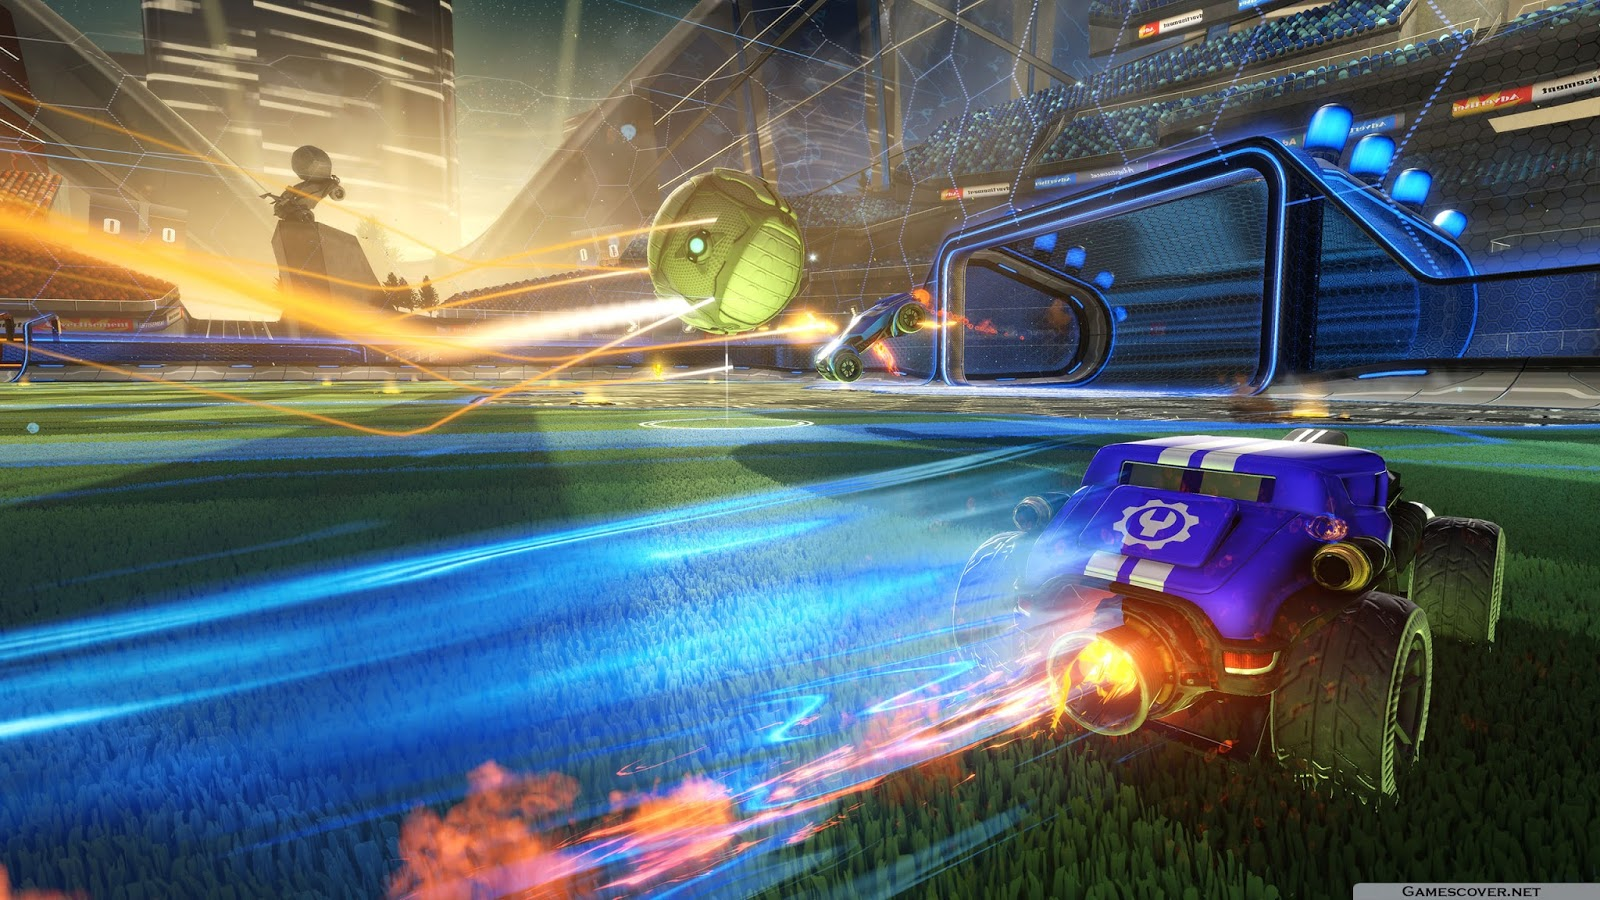 how to play vs is friend in rocket league